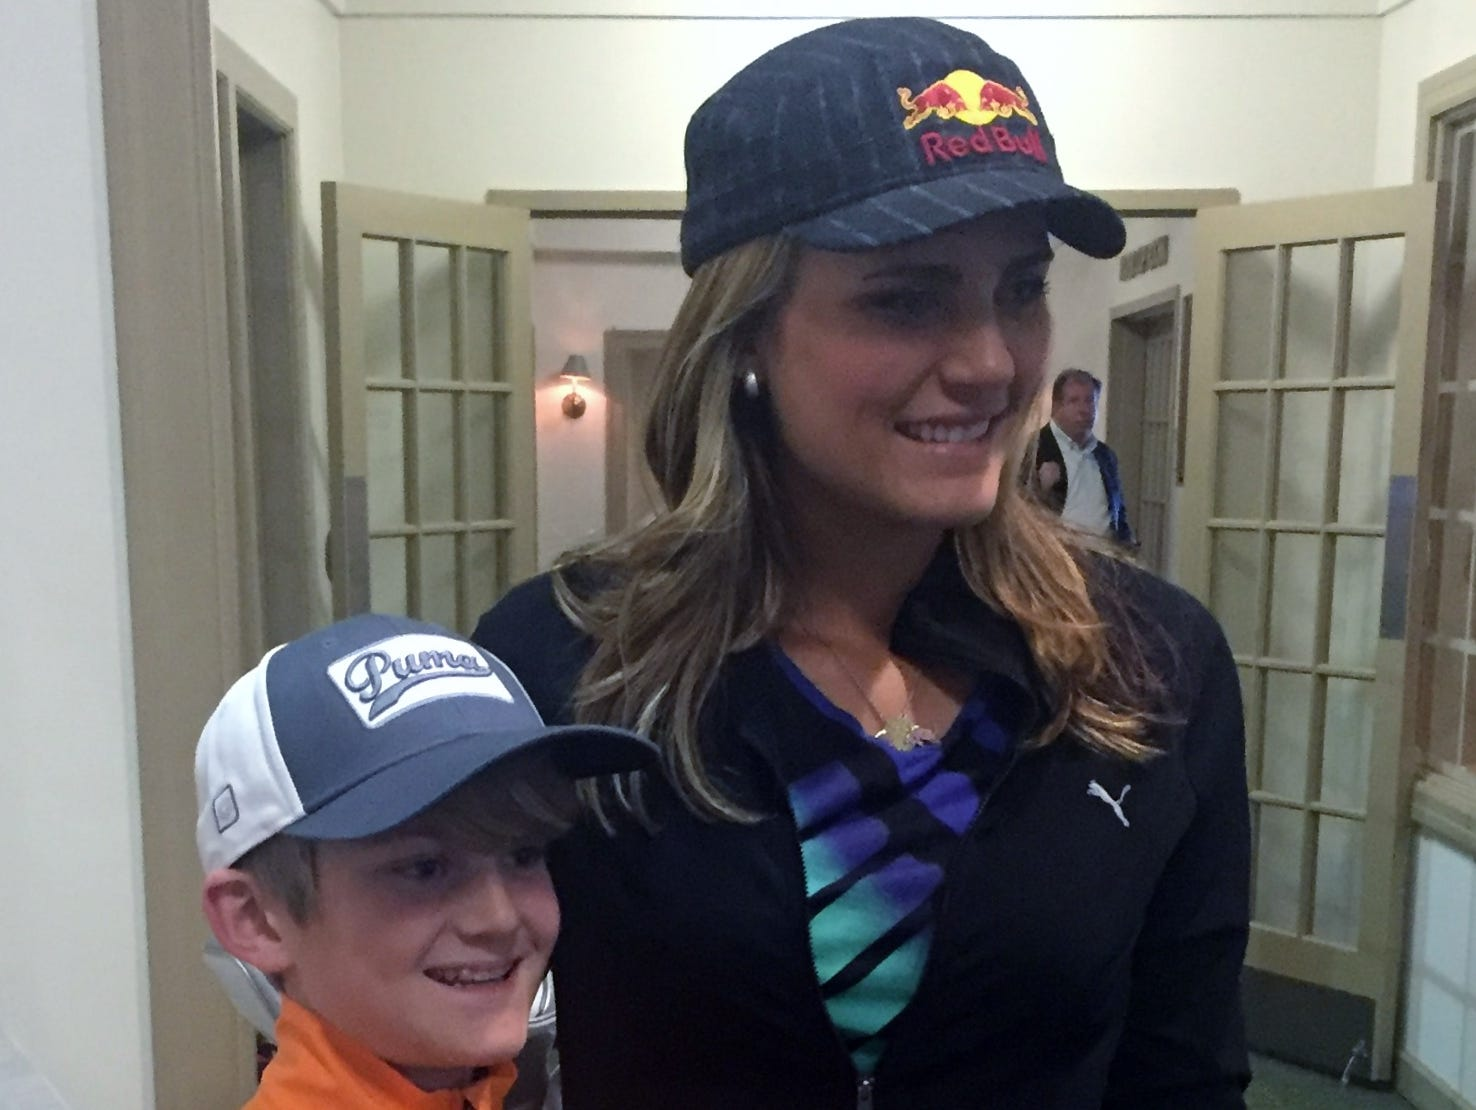 Sam O'Hara got to meet Lexi Thompson and Jordan Spieth last month during a promotional event for Drive, Chip & Putt.